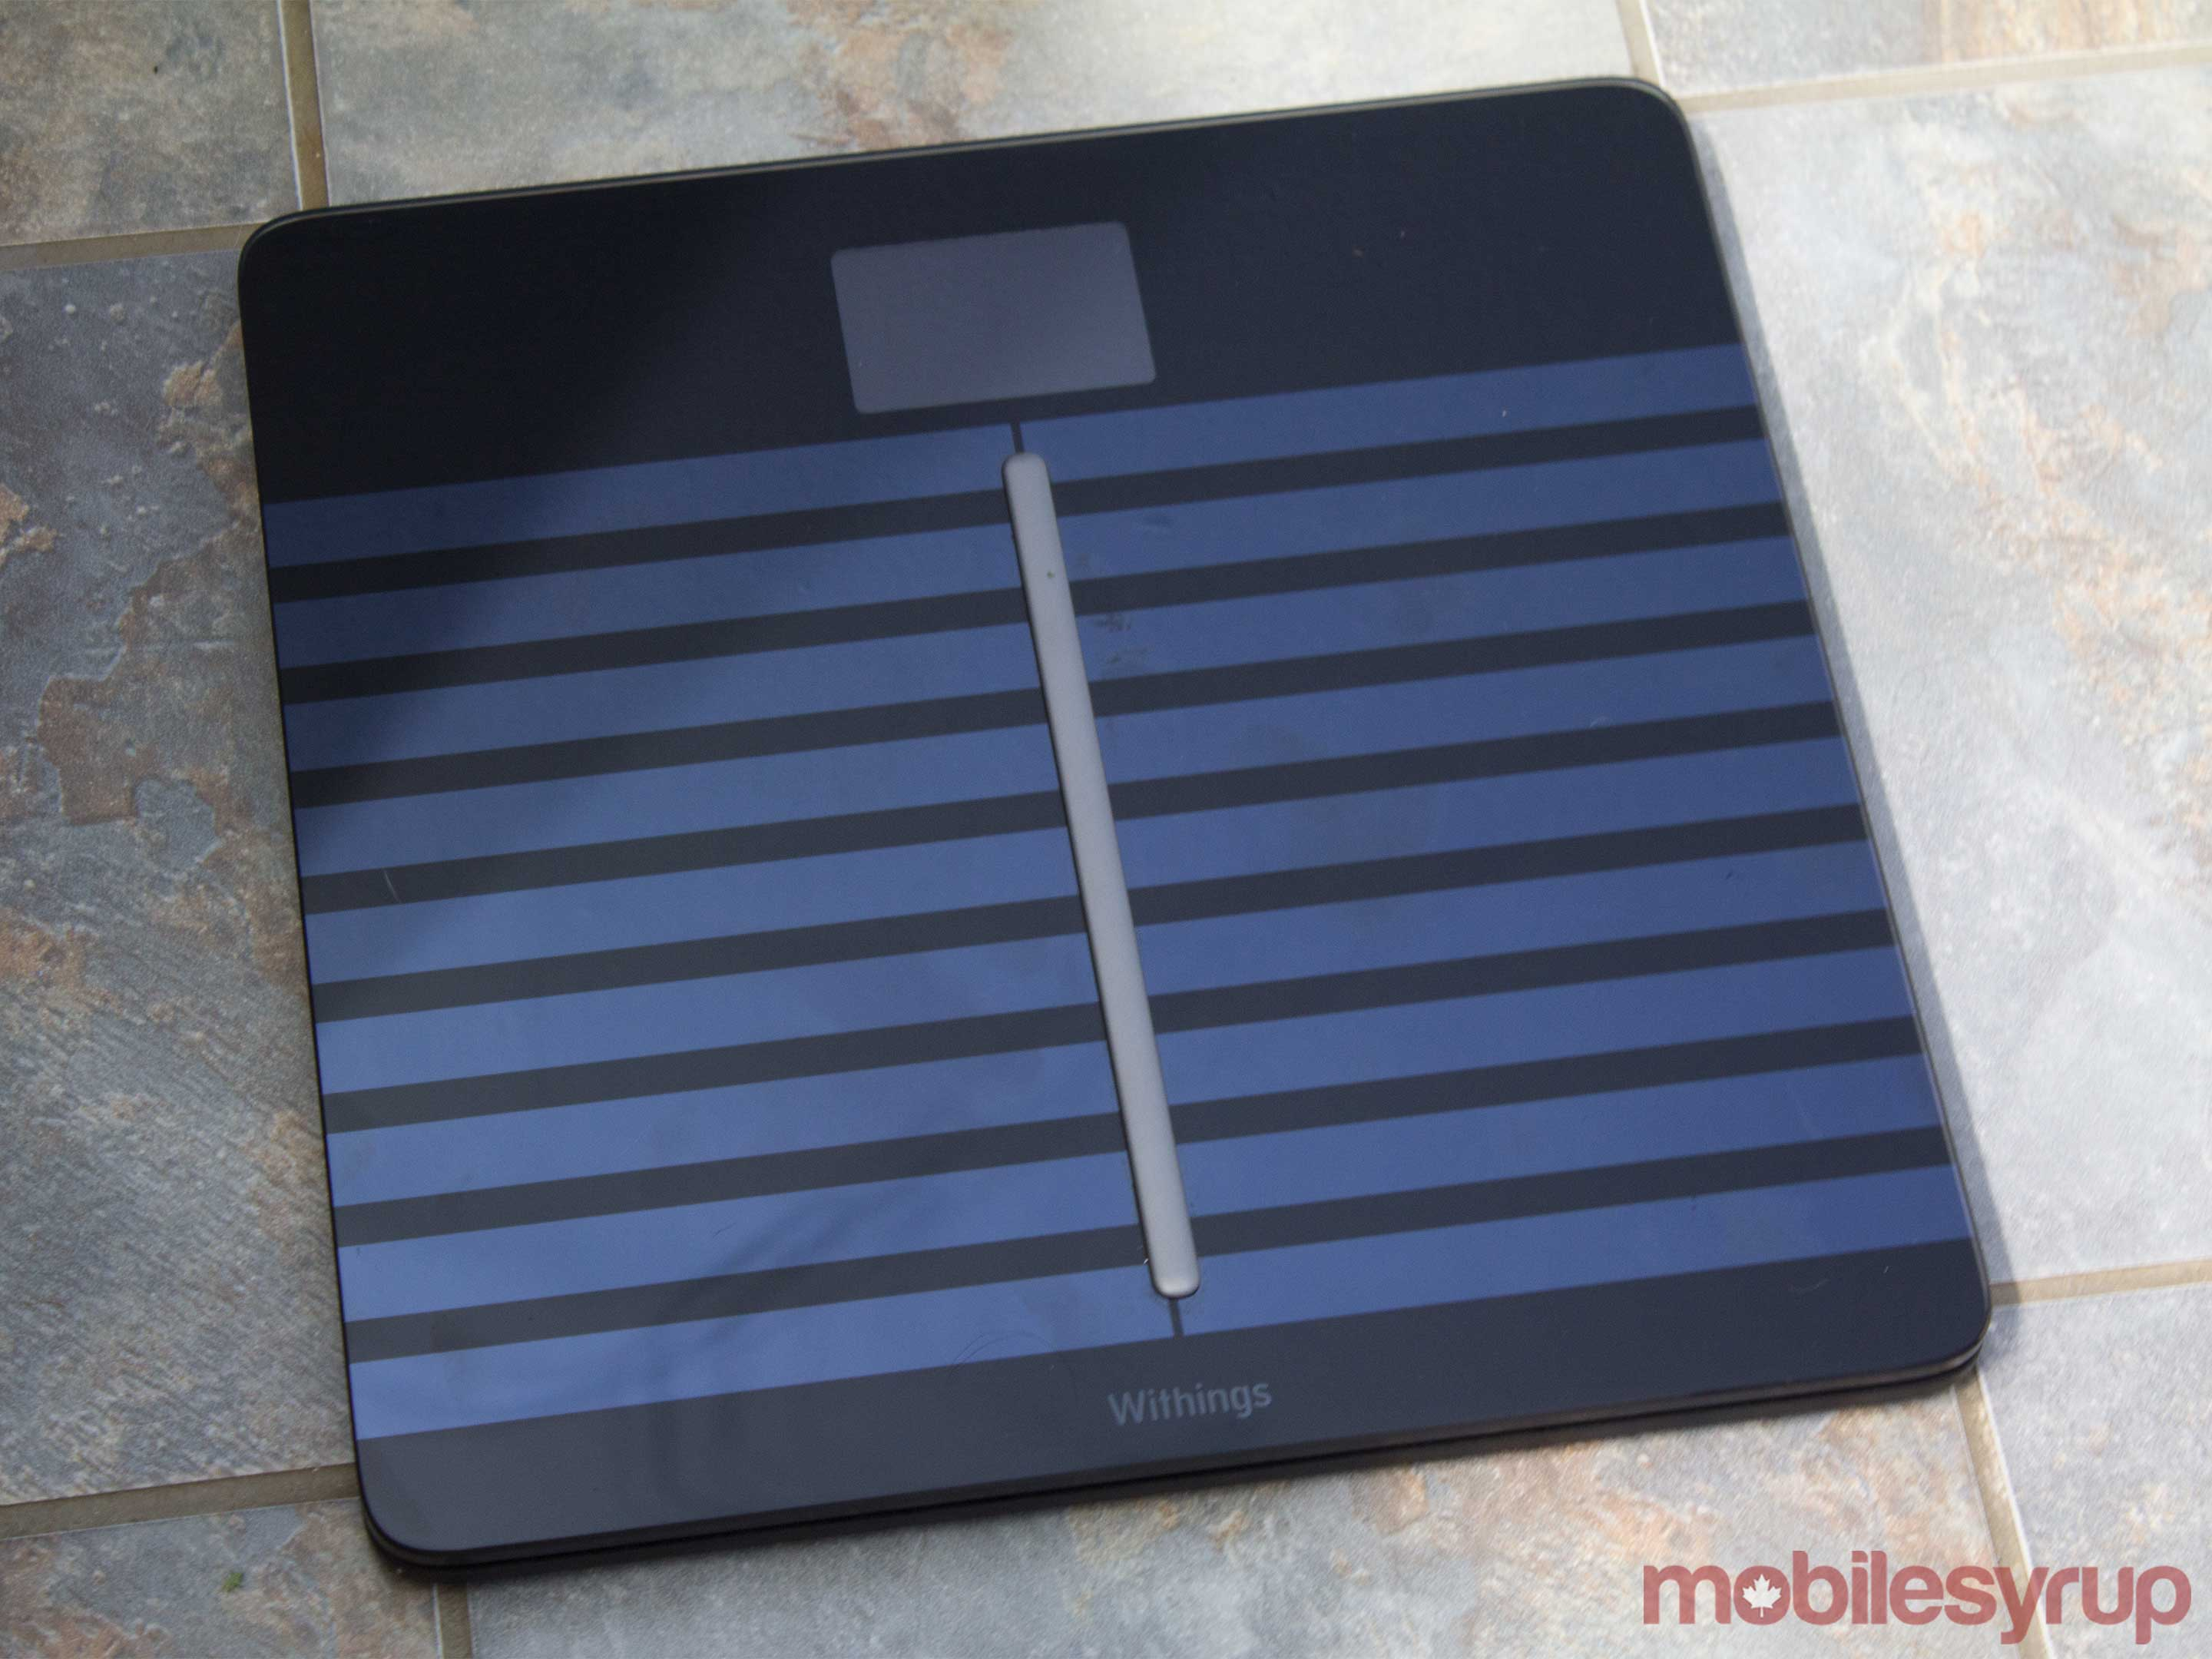 Withings Body Cardio Wi-Fi Scale top view